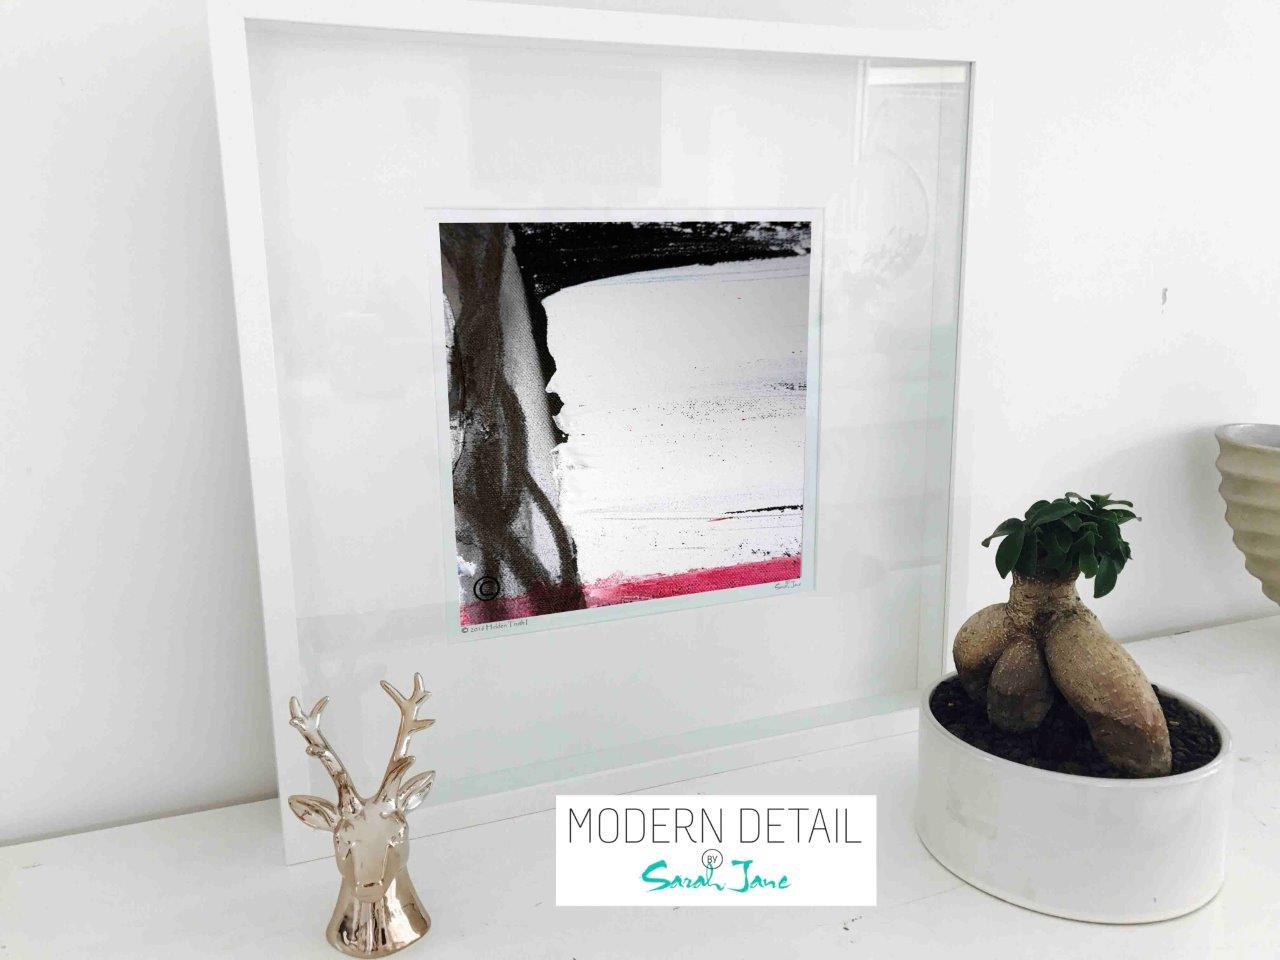 Regal Modern modern abstract print by artist called regal vii in